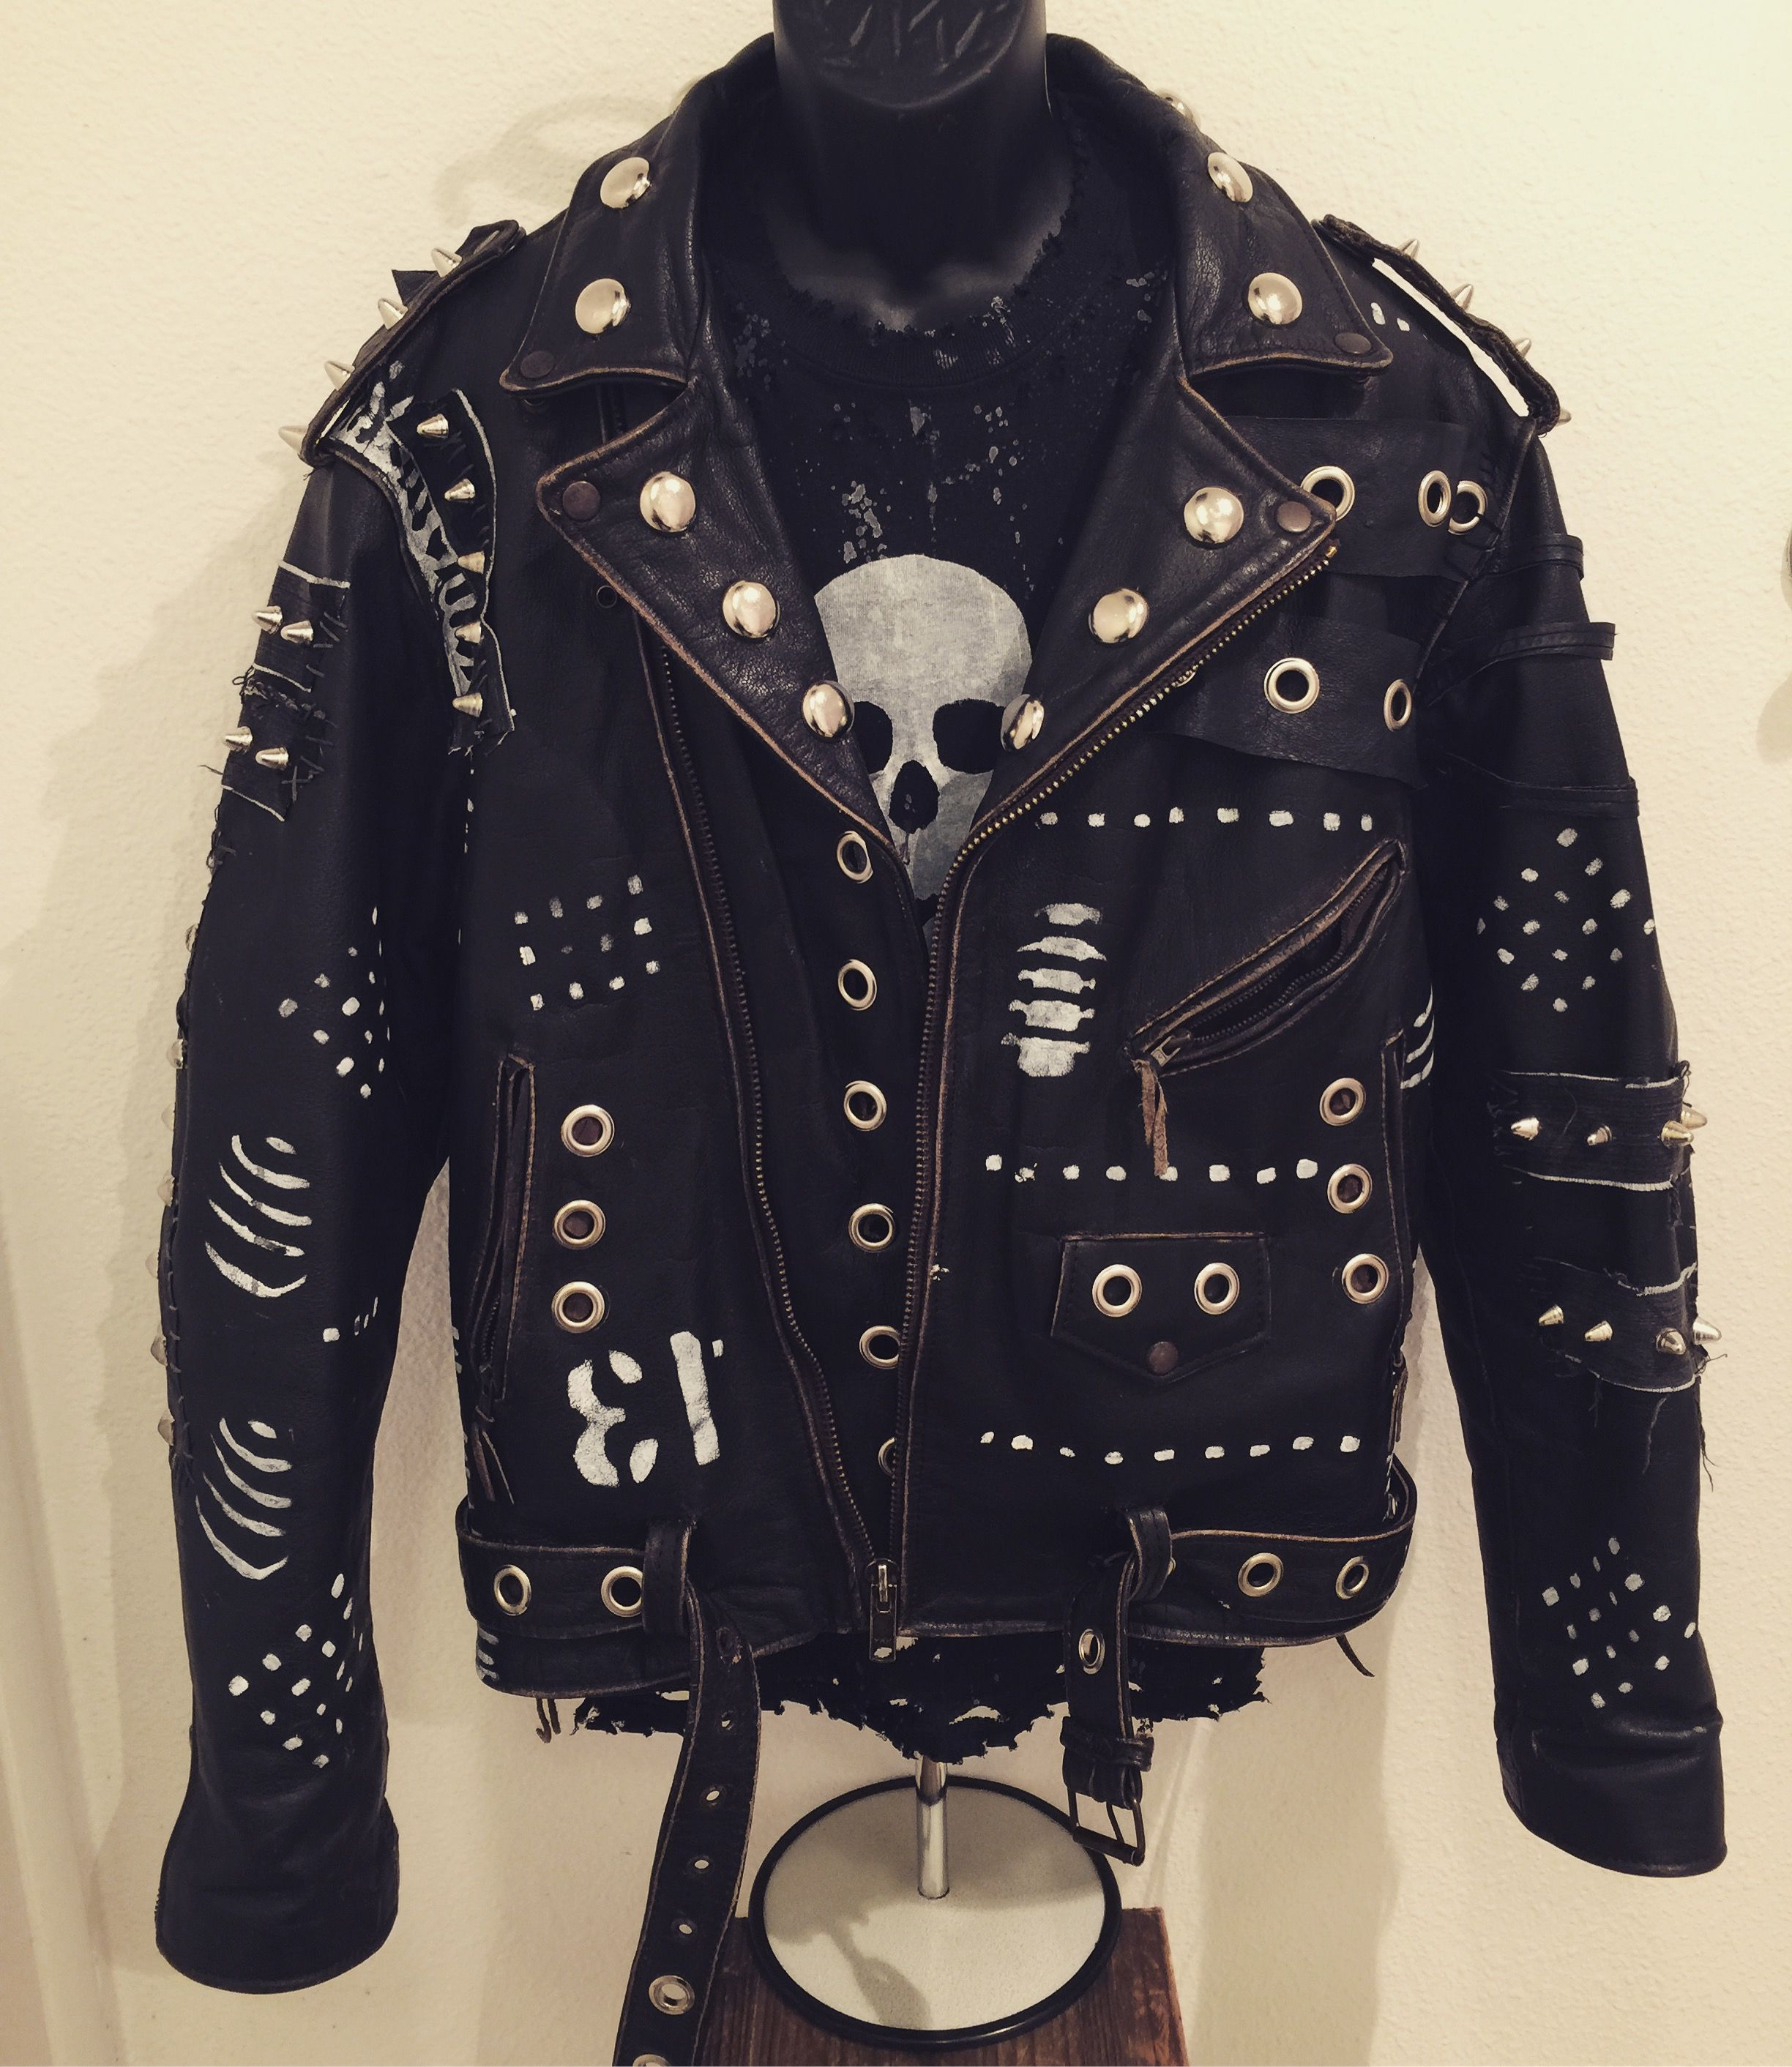 Warrior jackets from ChadCherryClothing Distressed